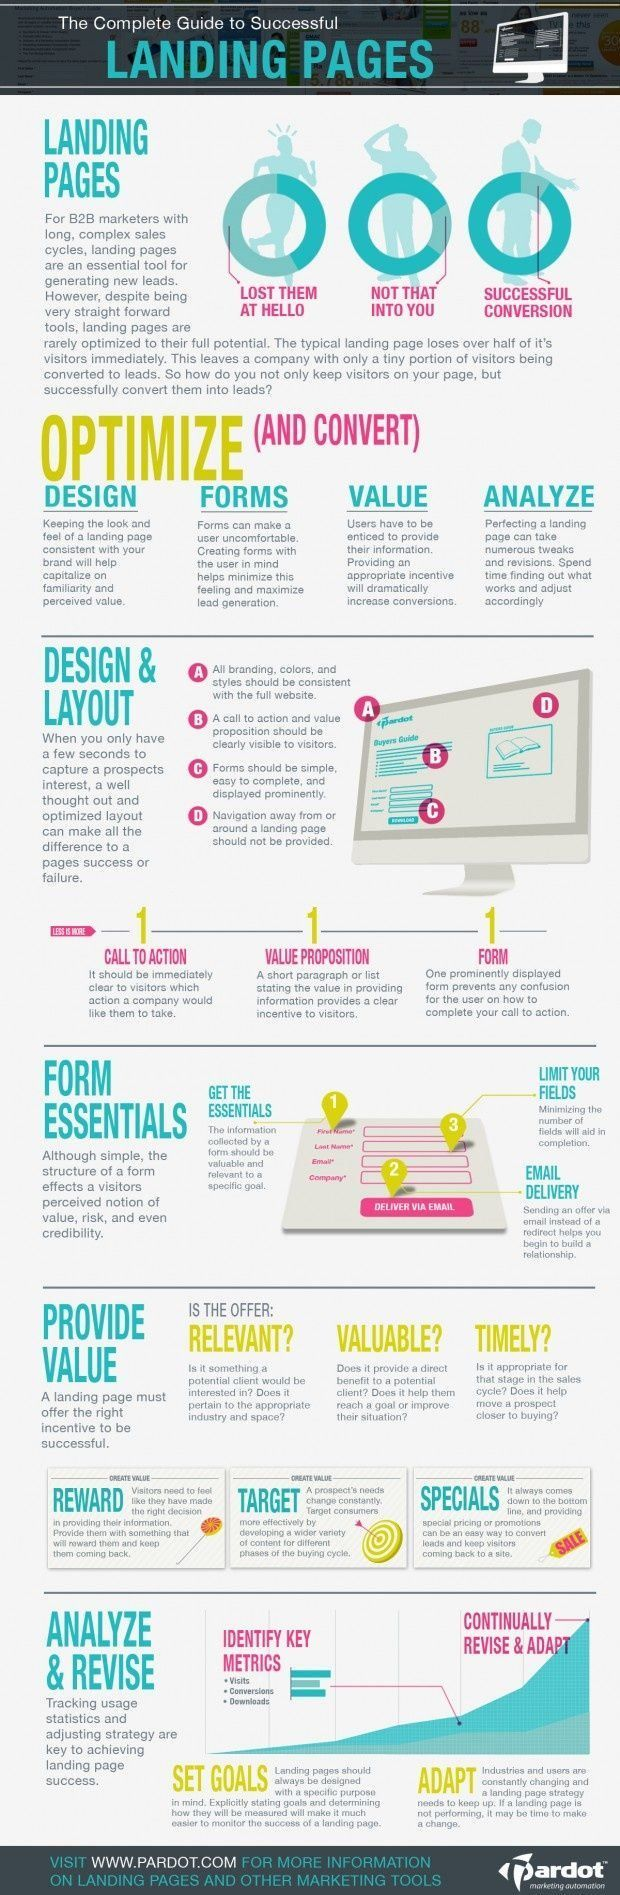 The complete guide to successfull landing pages. #landingpage #webdesign #infographic